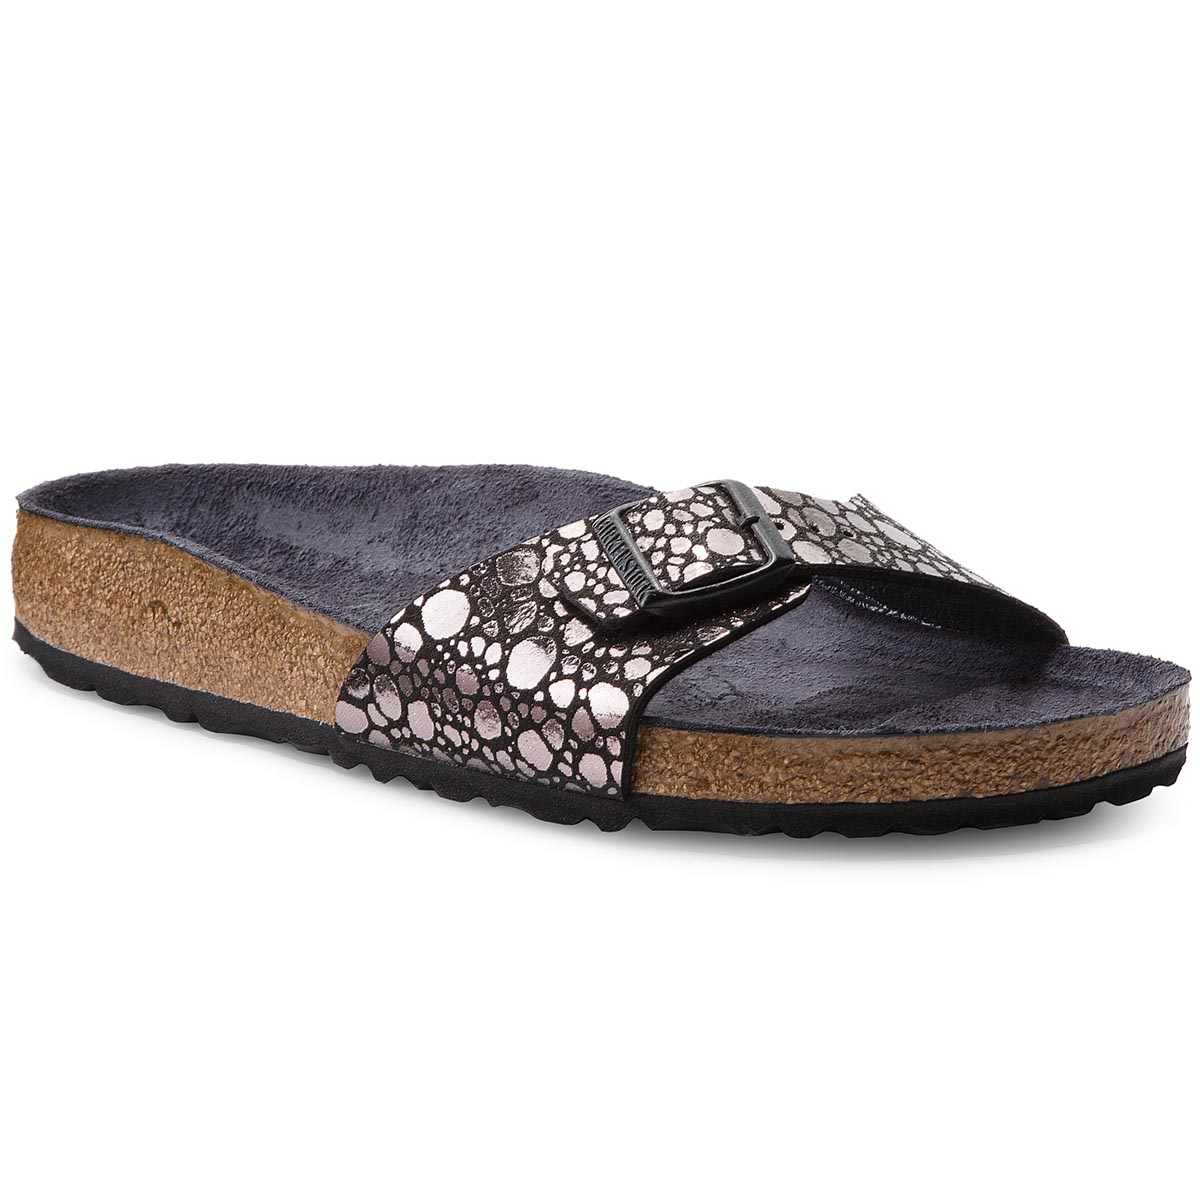 Klapki BIRKENSTOCK - Madrid Bs 1008804 Metallic Stones Black